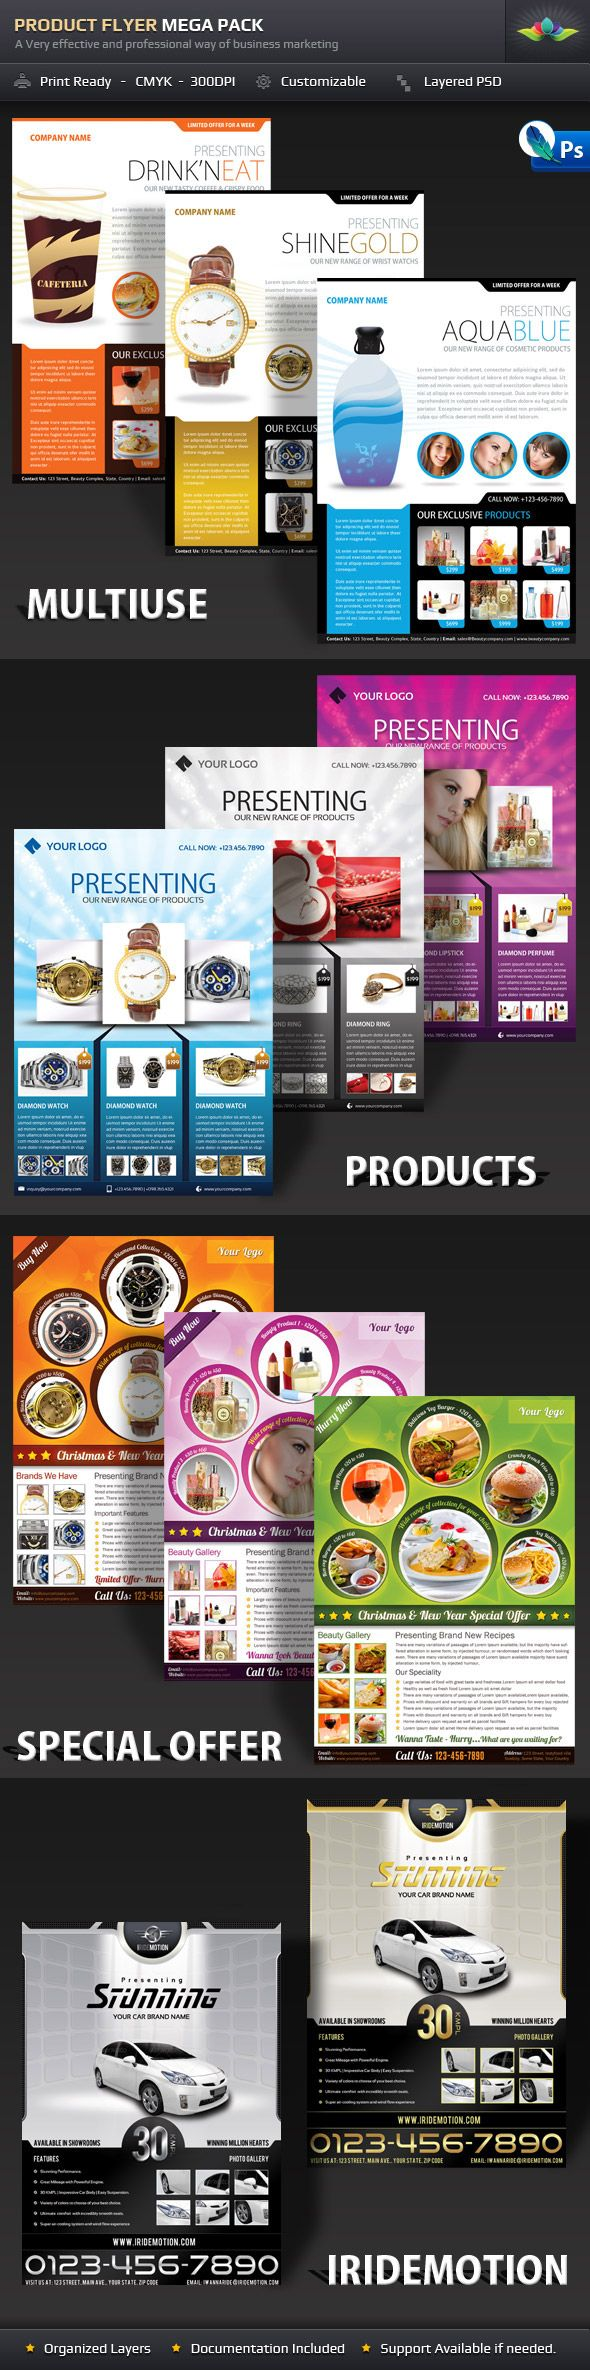 Best Sales Sheets  Collateral Images On   Graphics